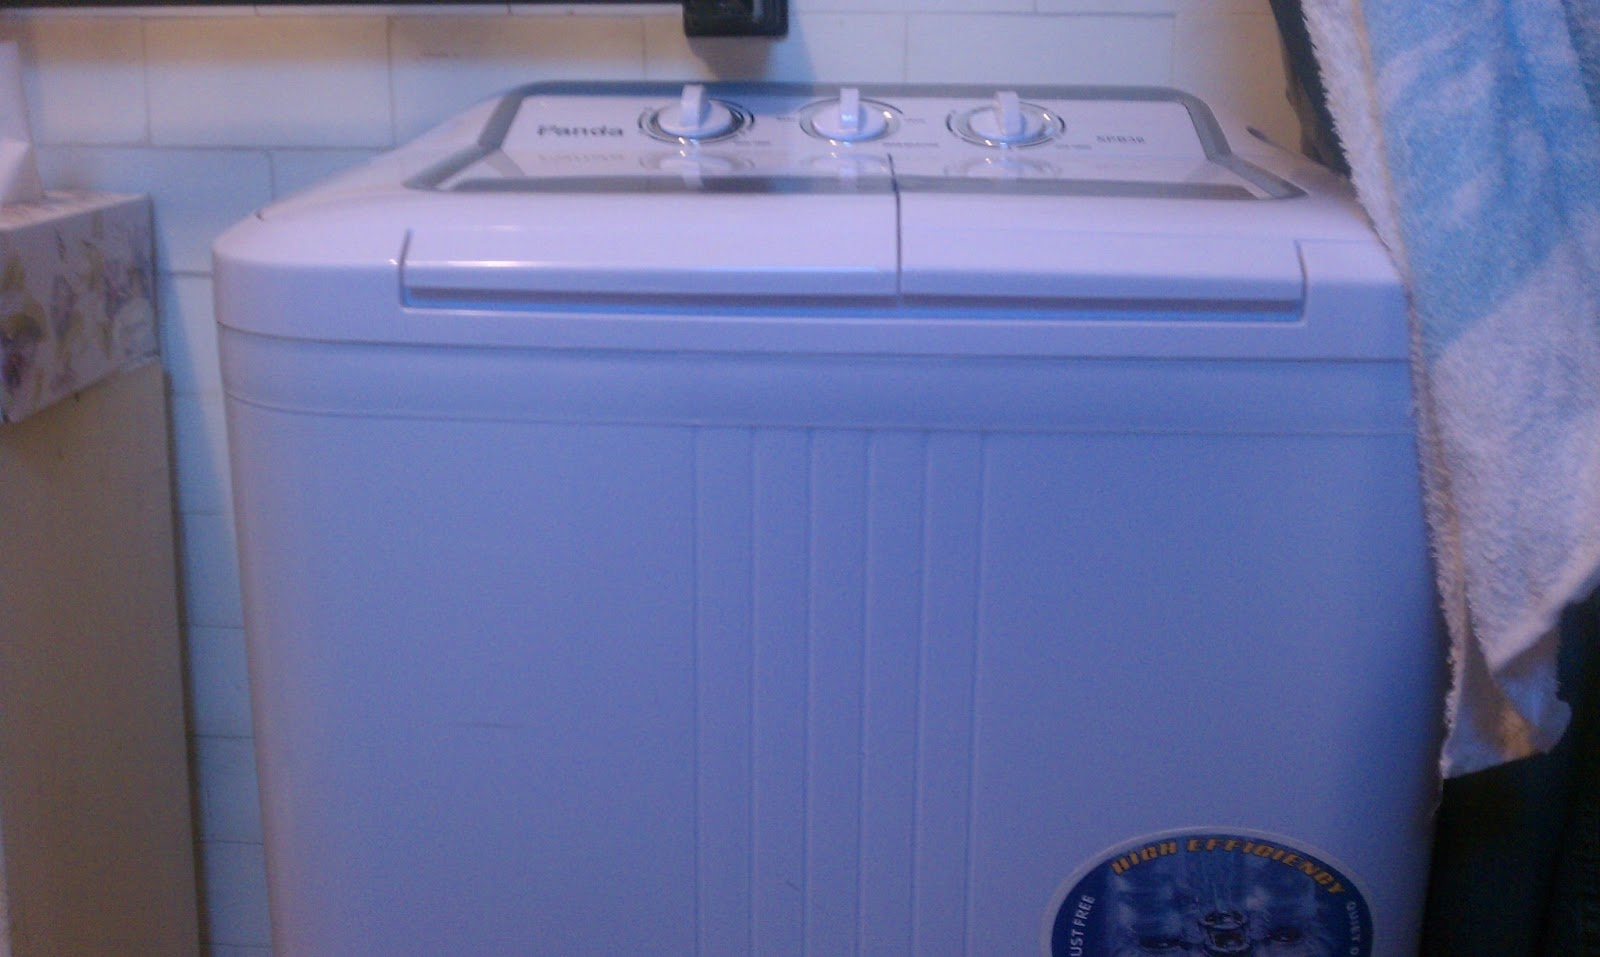 Images of Panda Washer Review